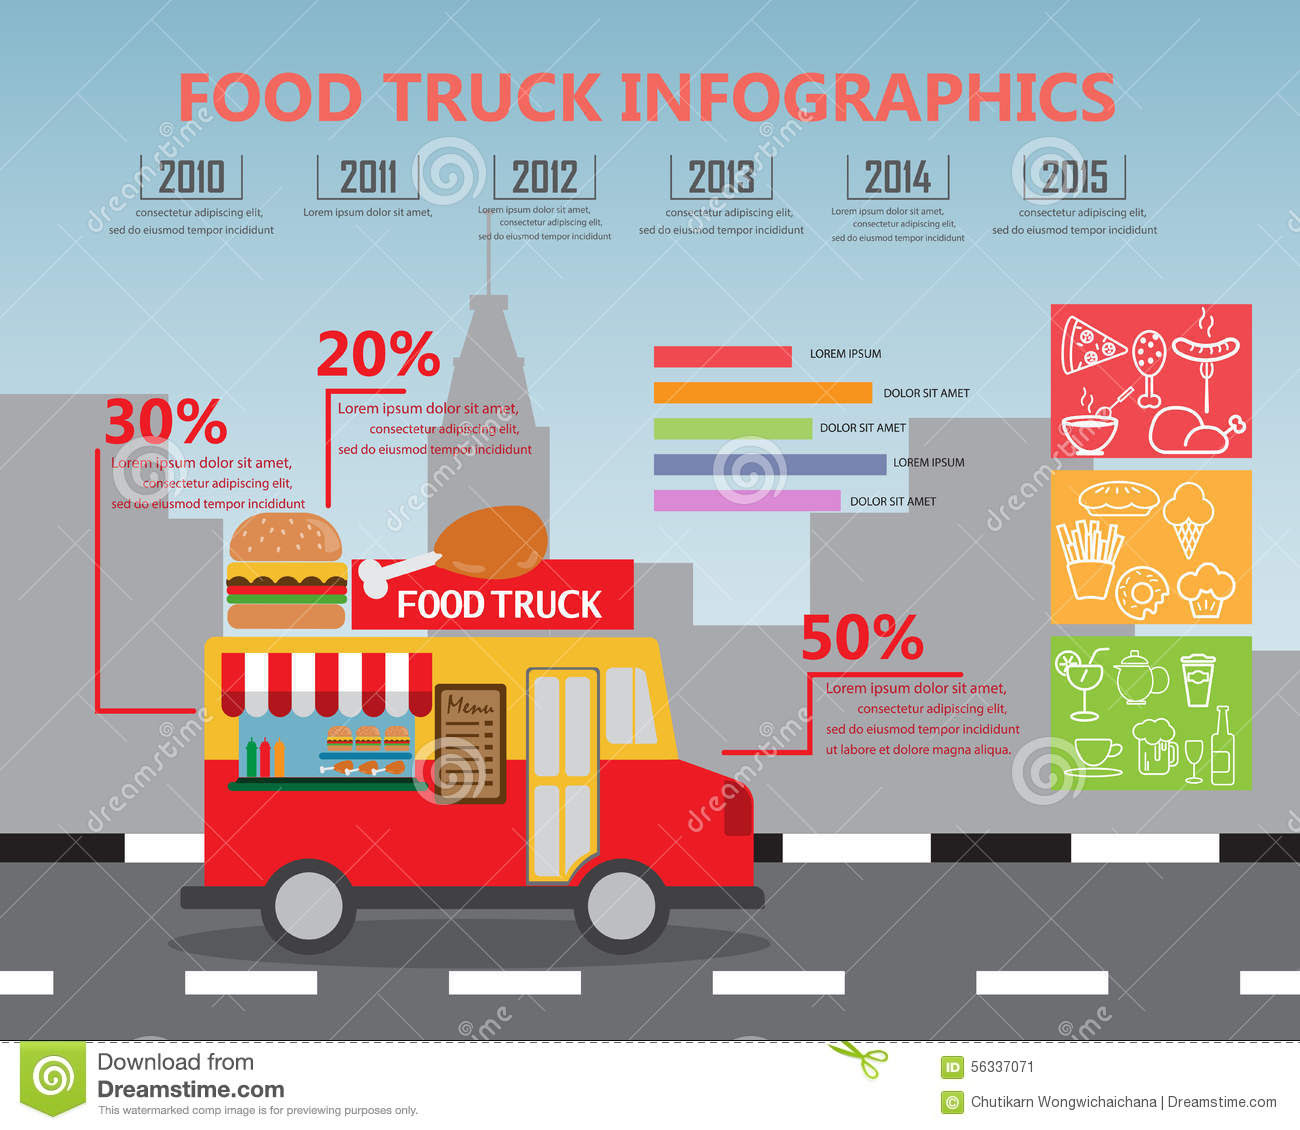 fod truck infographics fast food small business concept elements background can be used statistic business data web 56337071